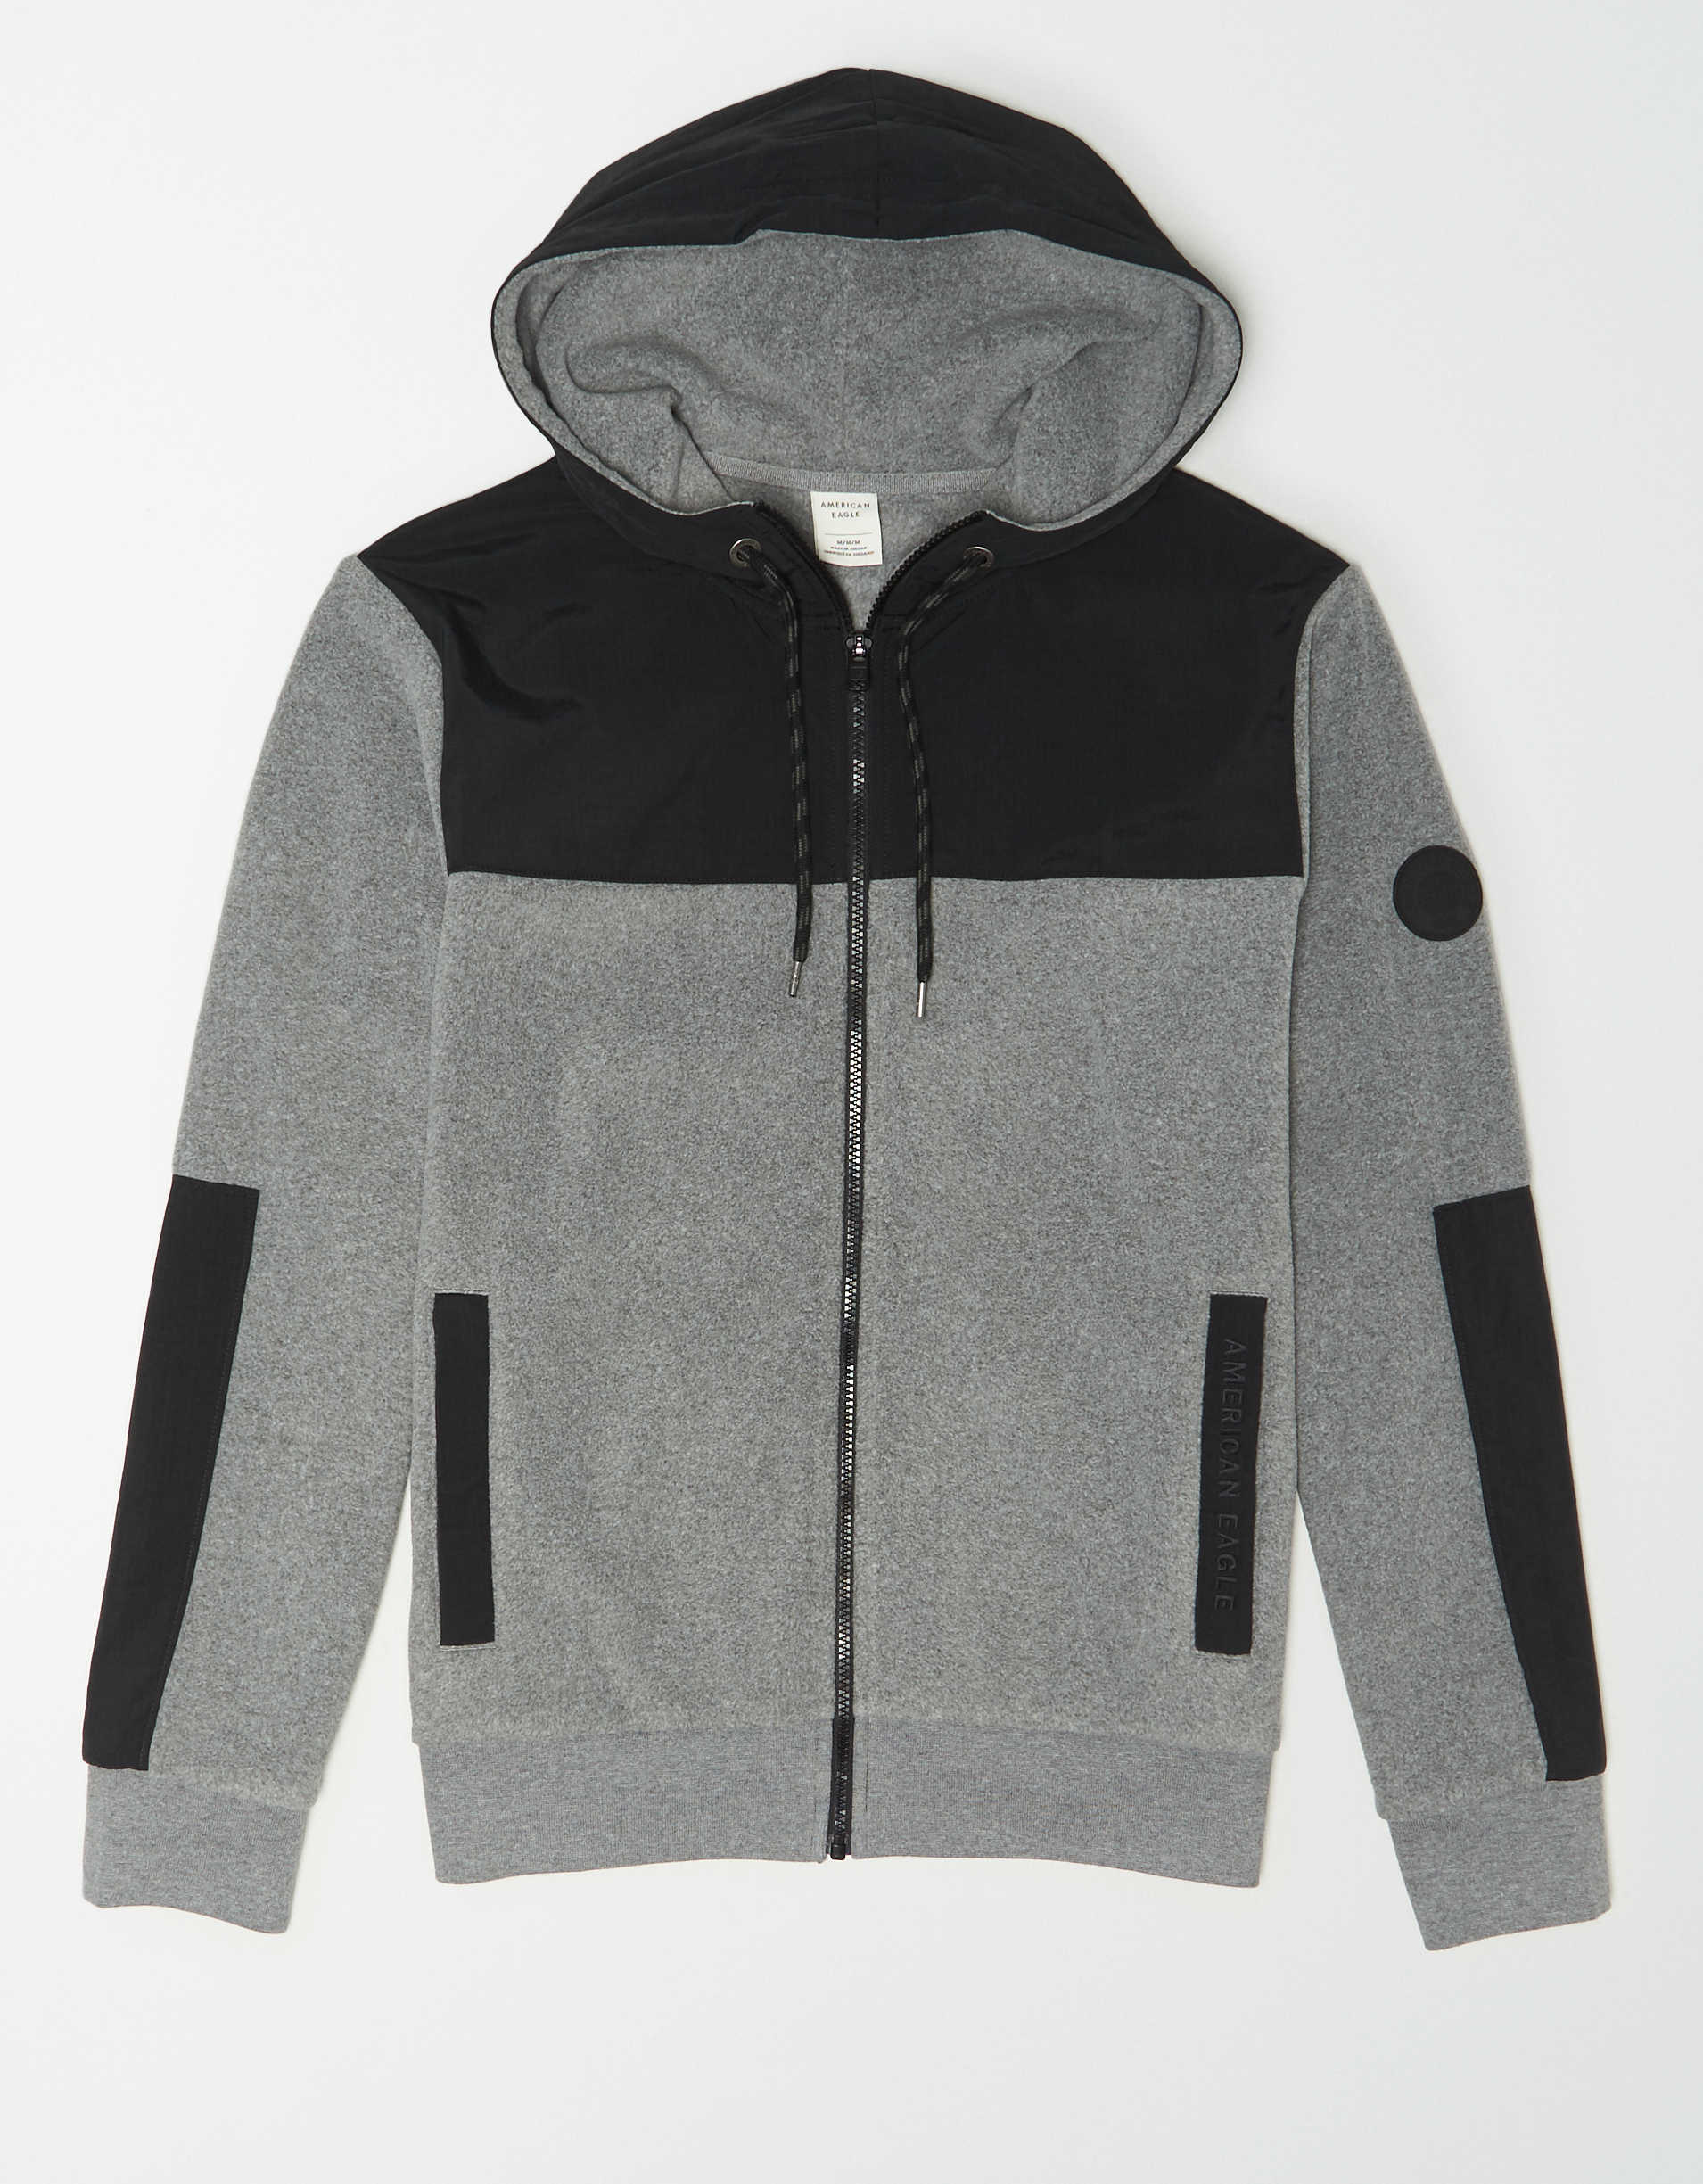 AE Polar Fleece Zip-Up Jacket